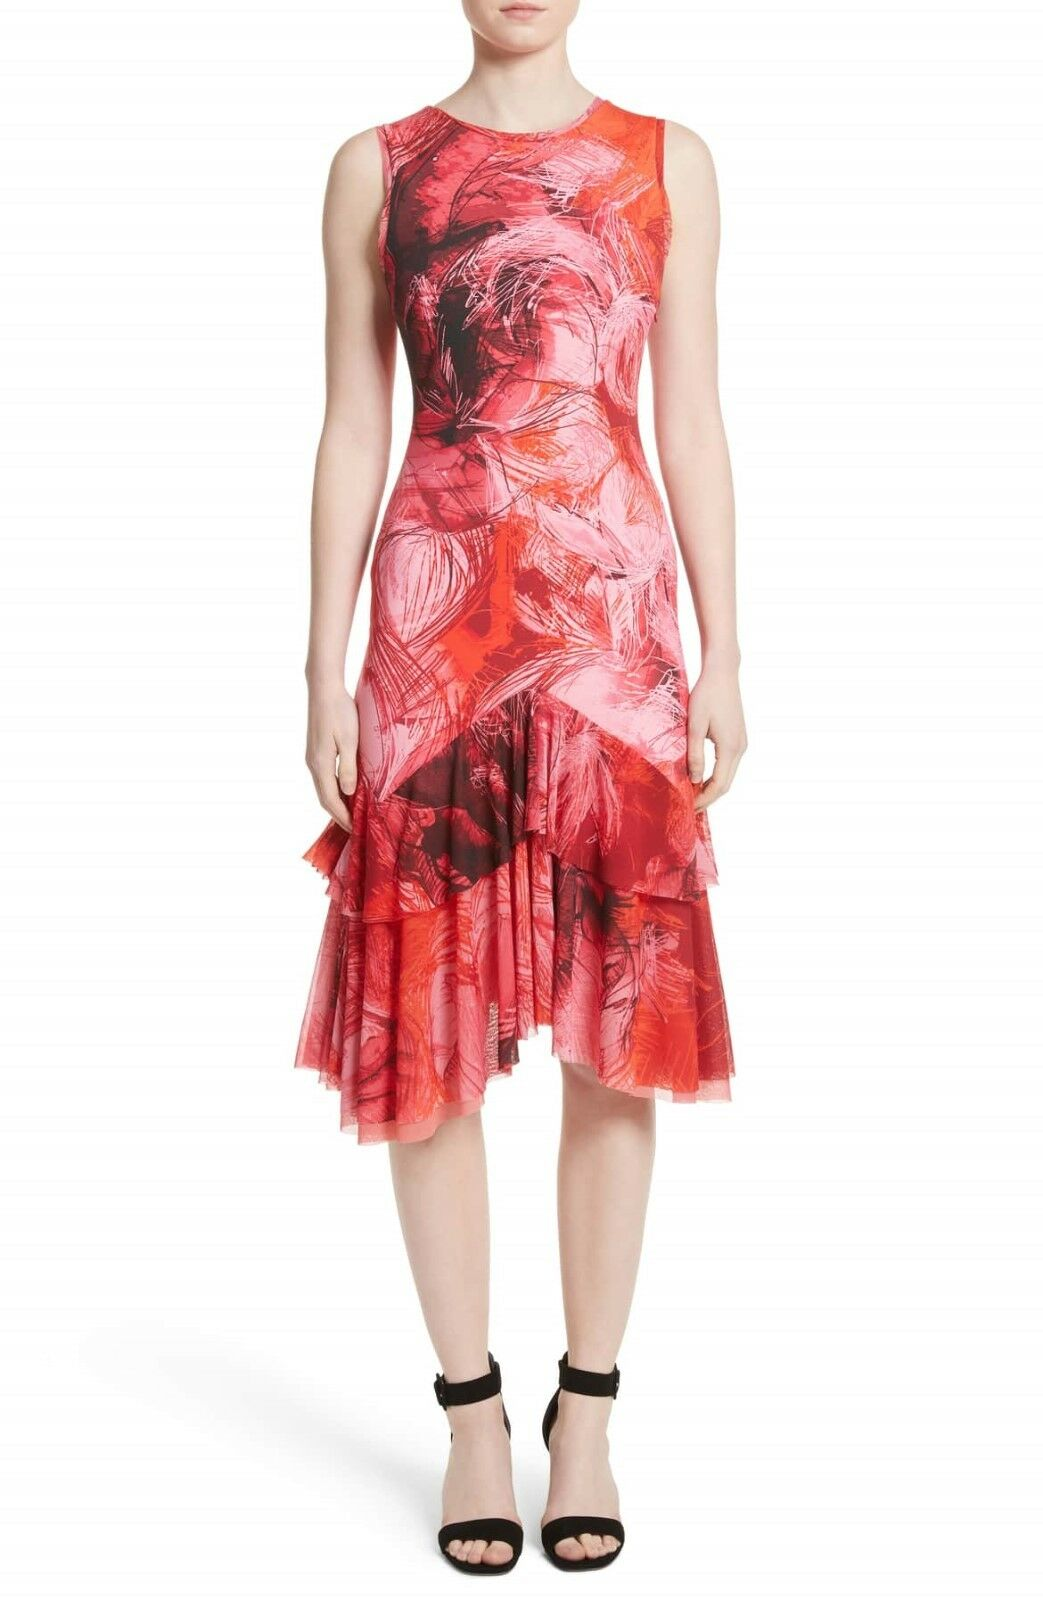 NEW Fuzzi Print Tulle Ruffle Hem Dress in Rosa Multi - Größe M